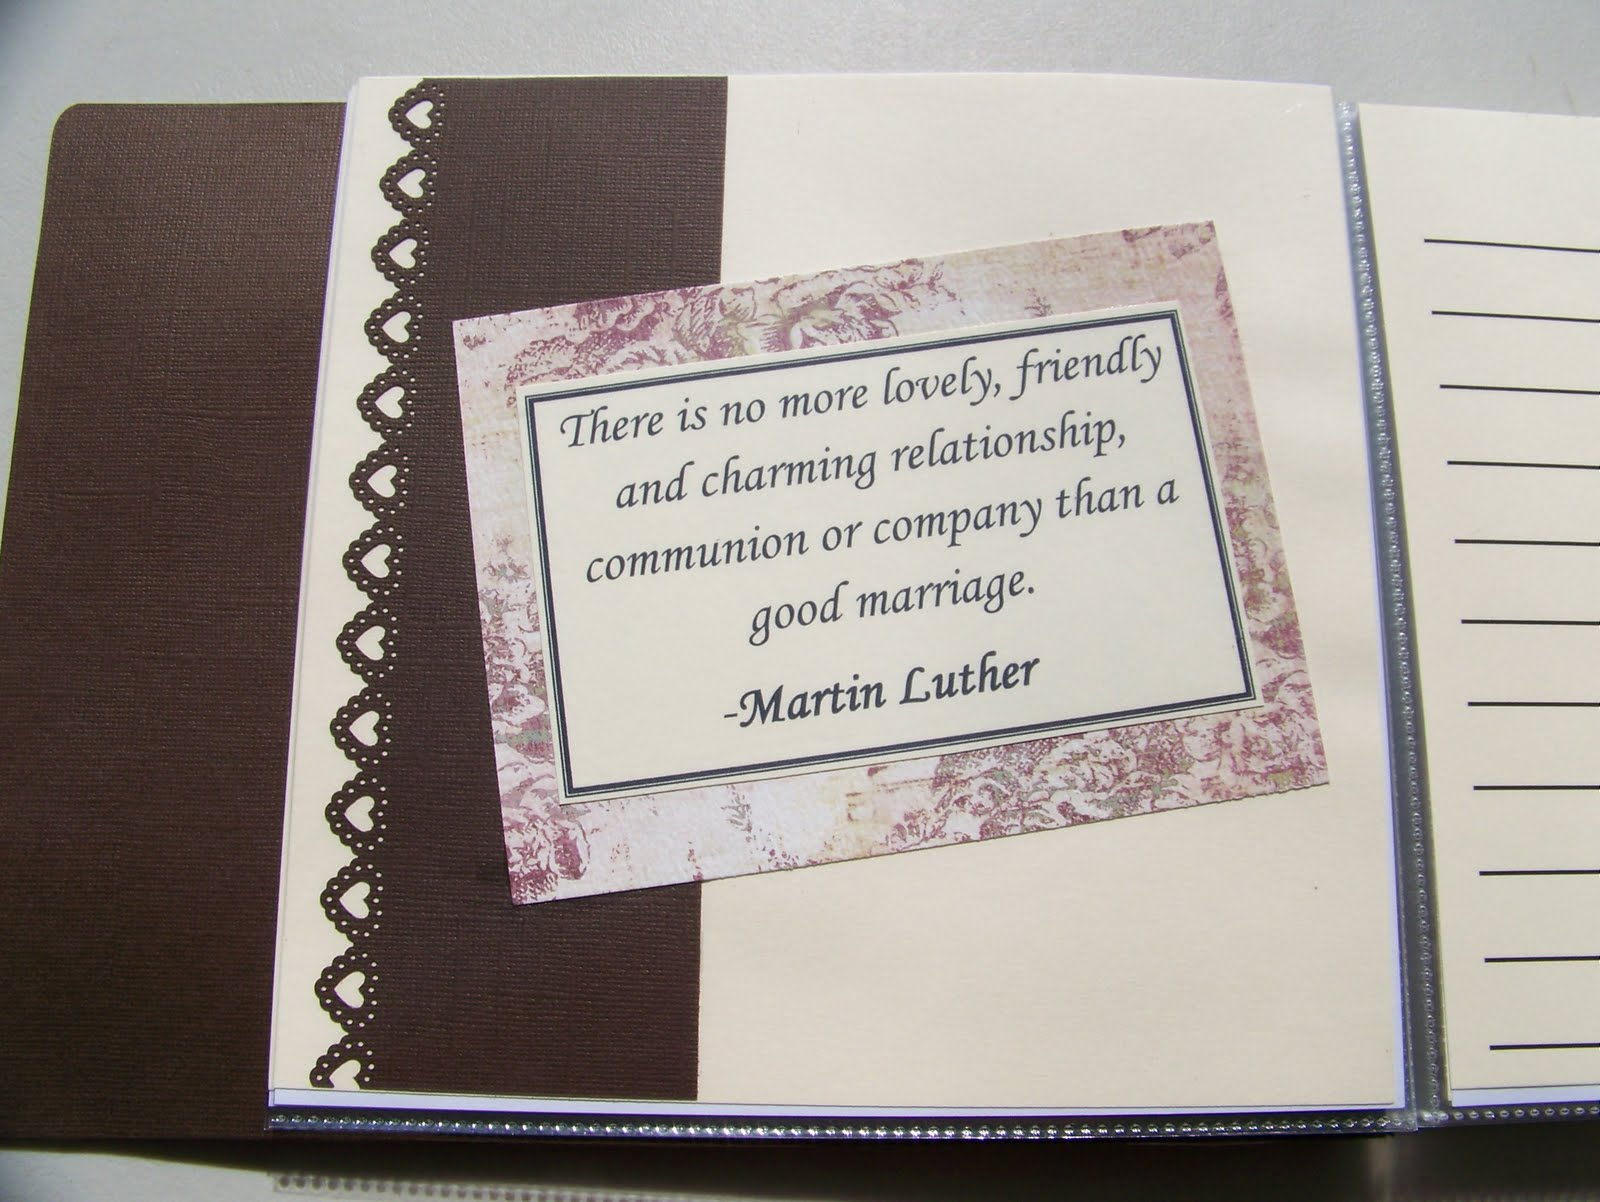 Quotes On Wedding Gift : There are 6 pages that I used these quotes.